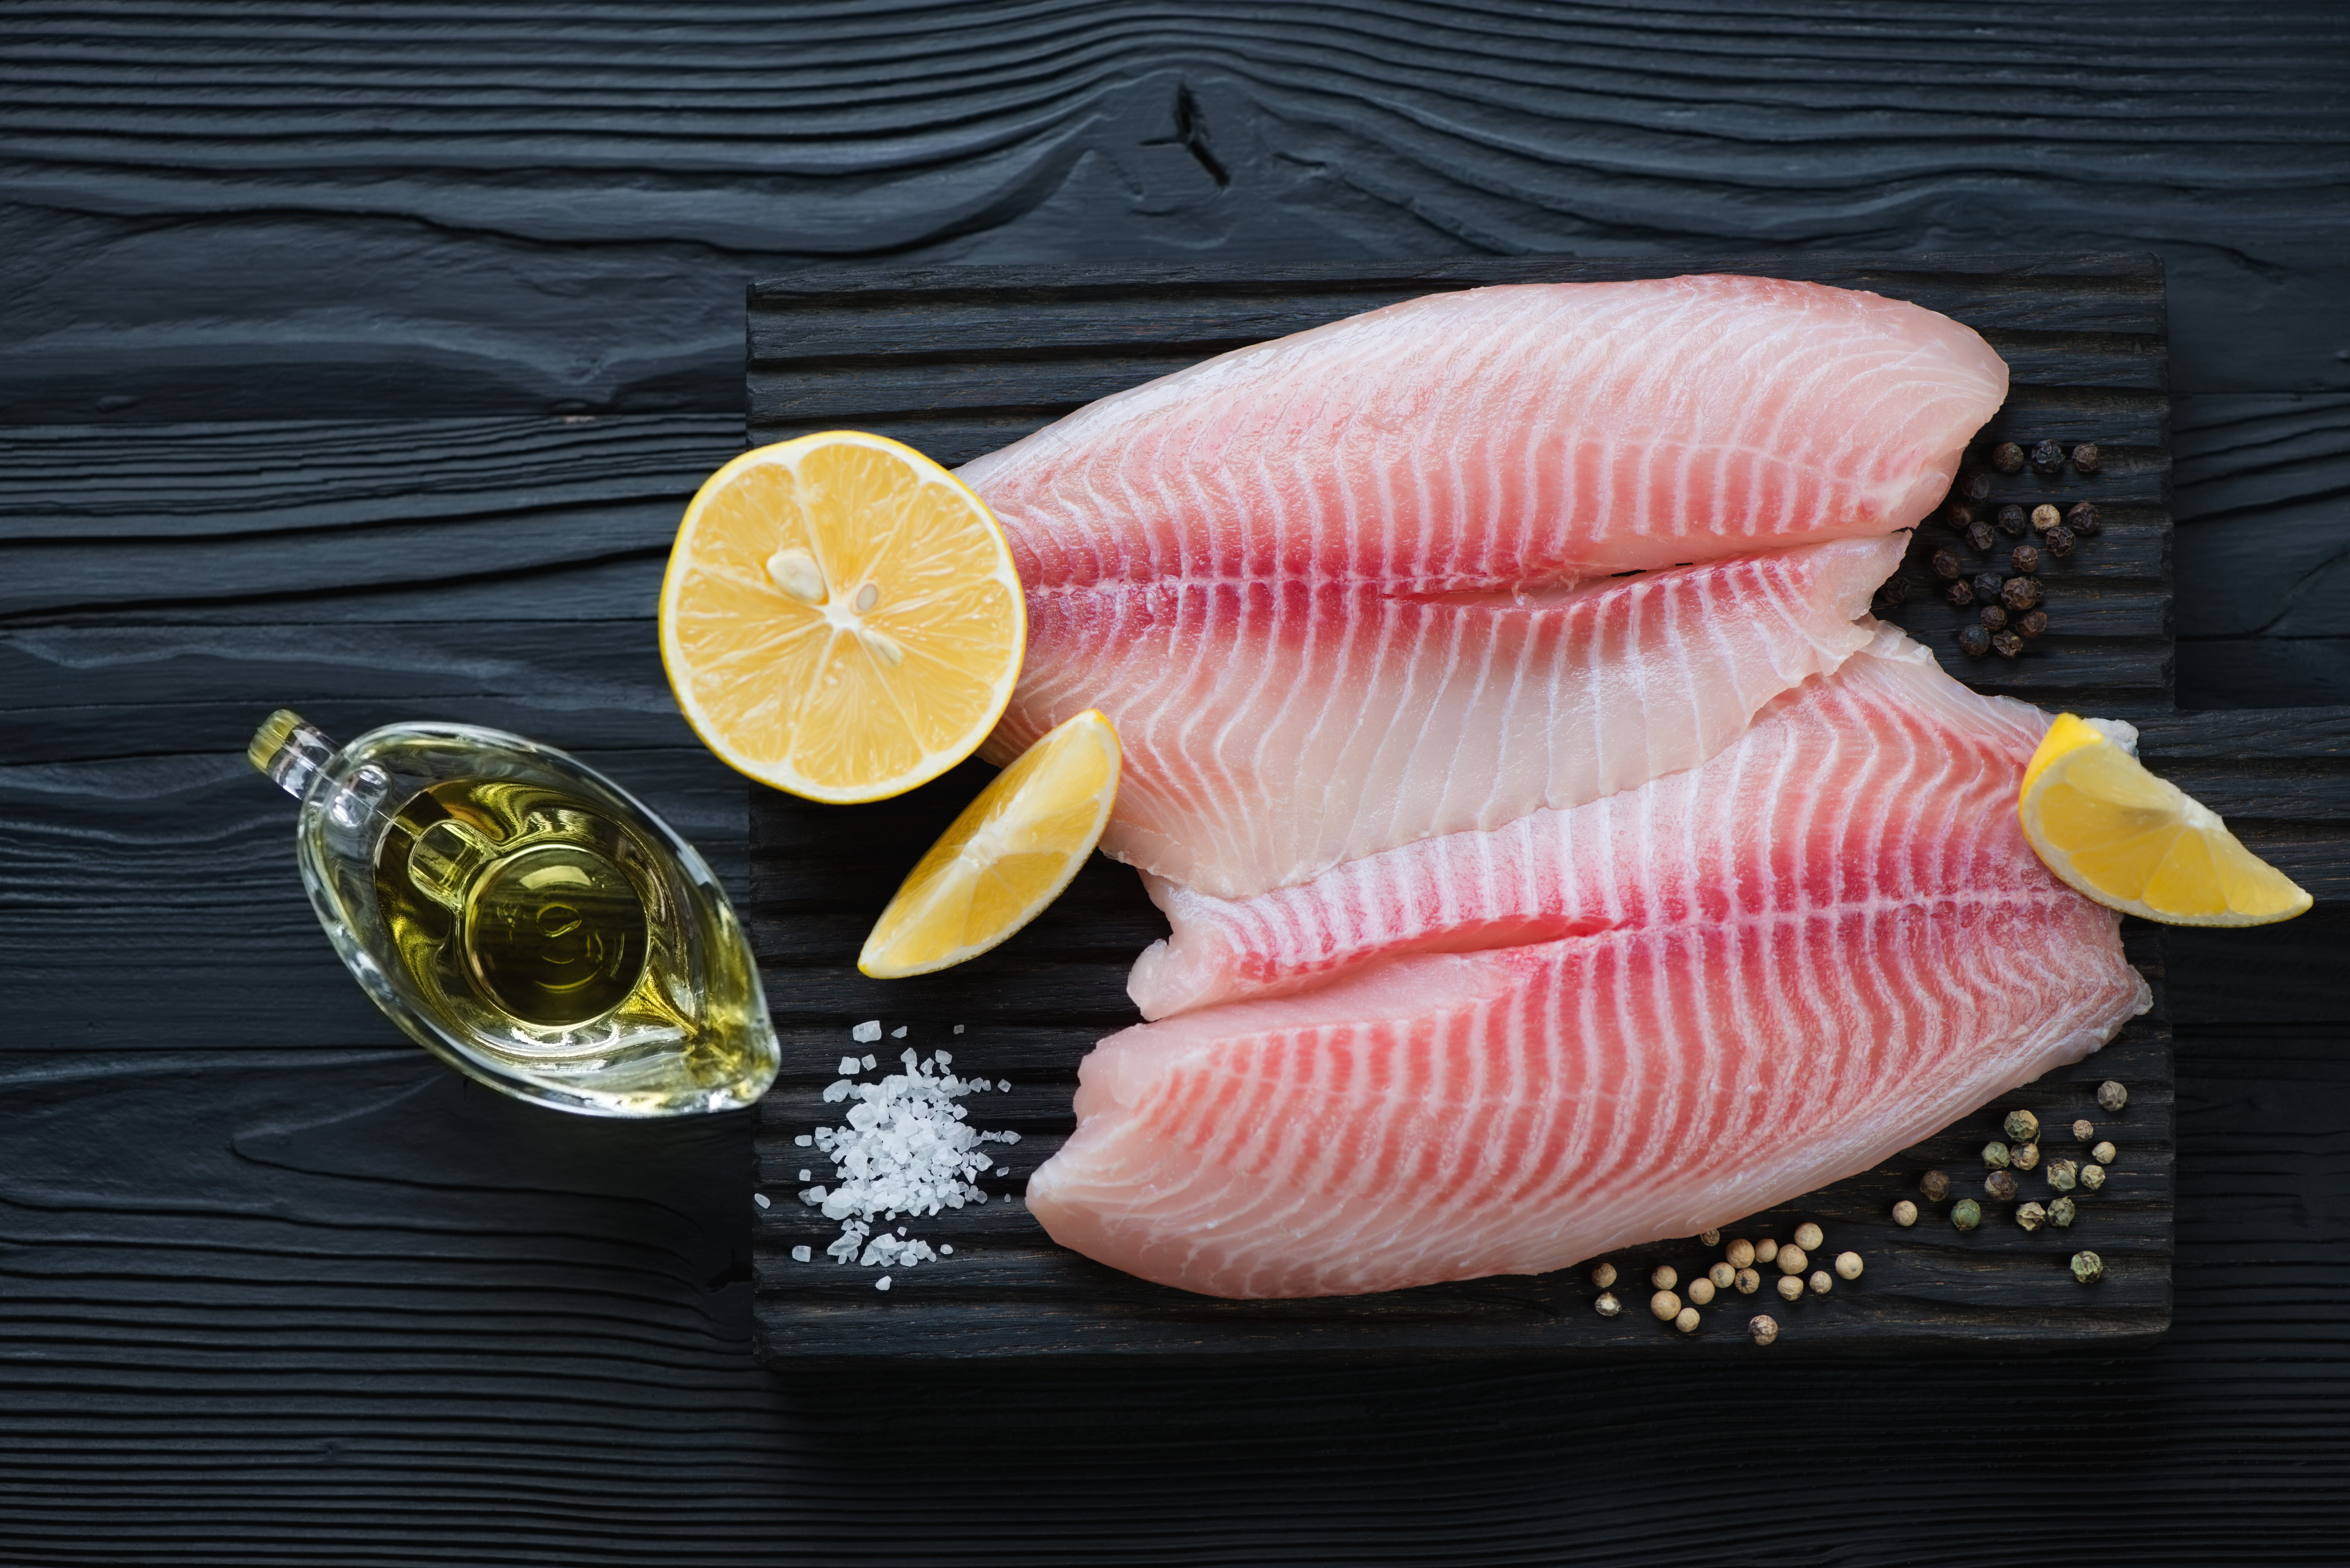 Fresh tilapia fillet ready to be cooked, black wooden background, top view